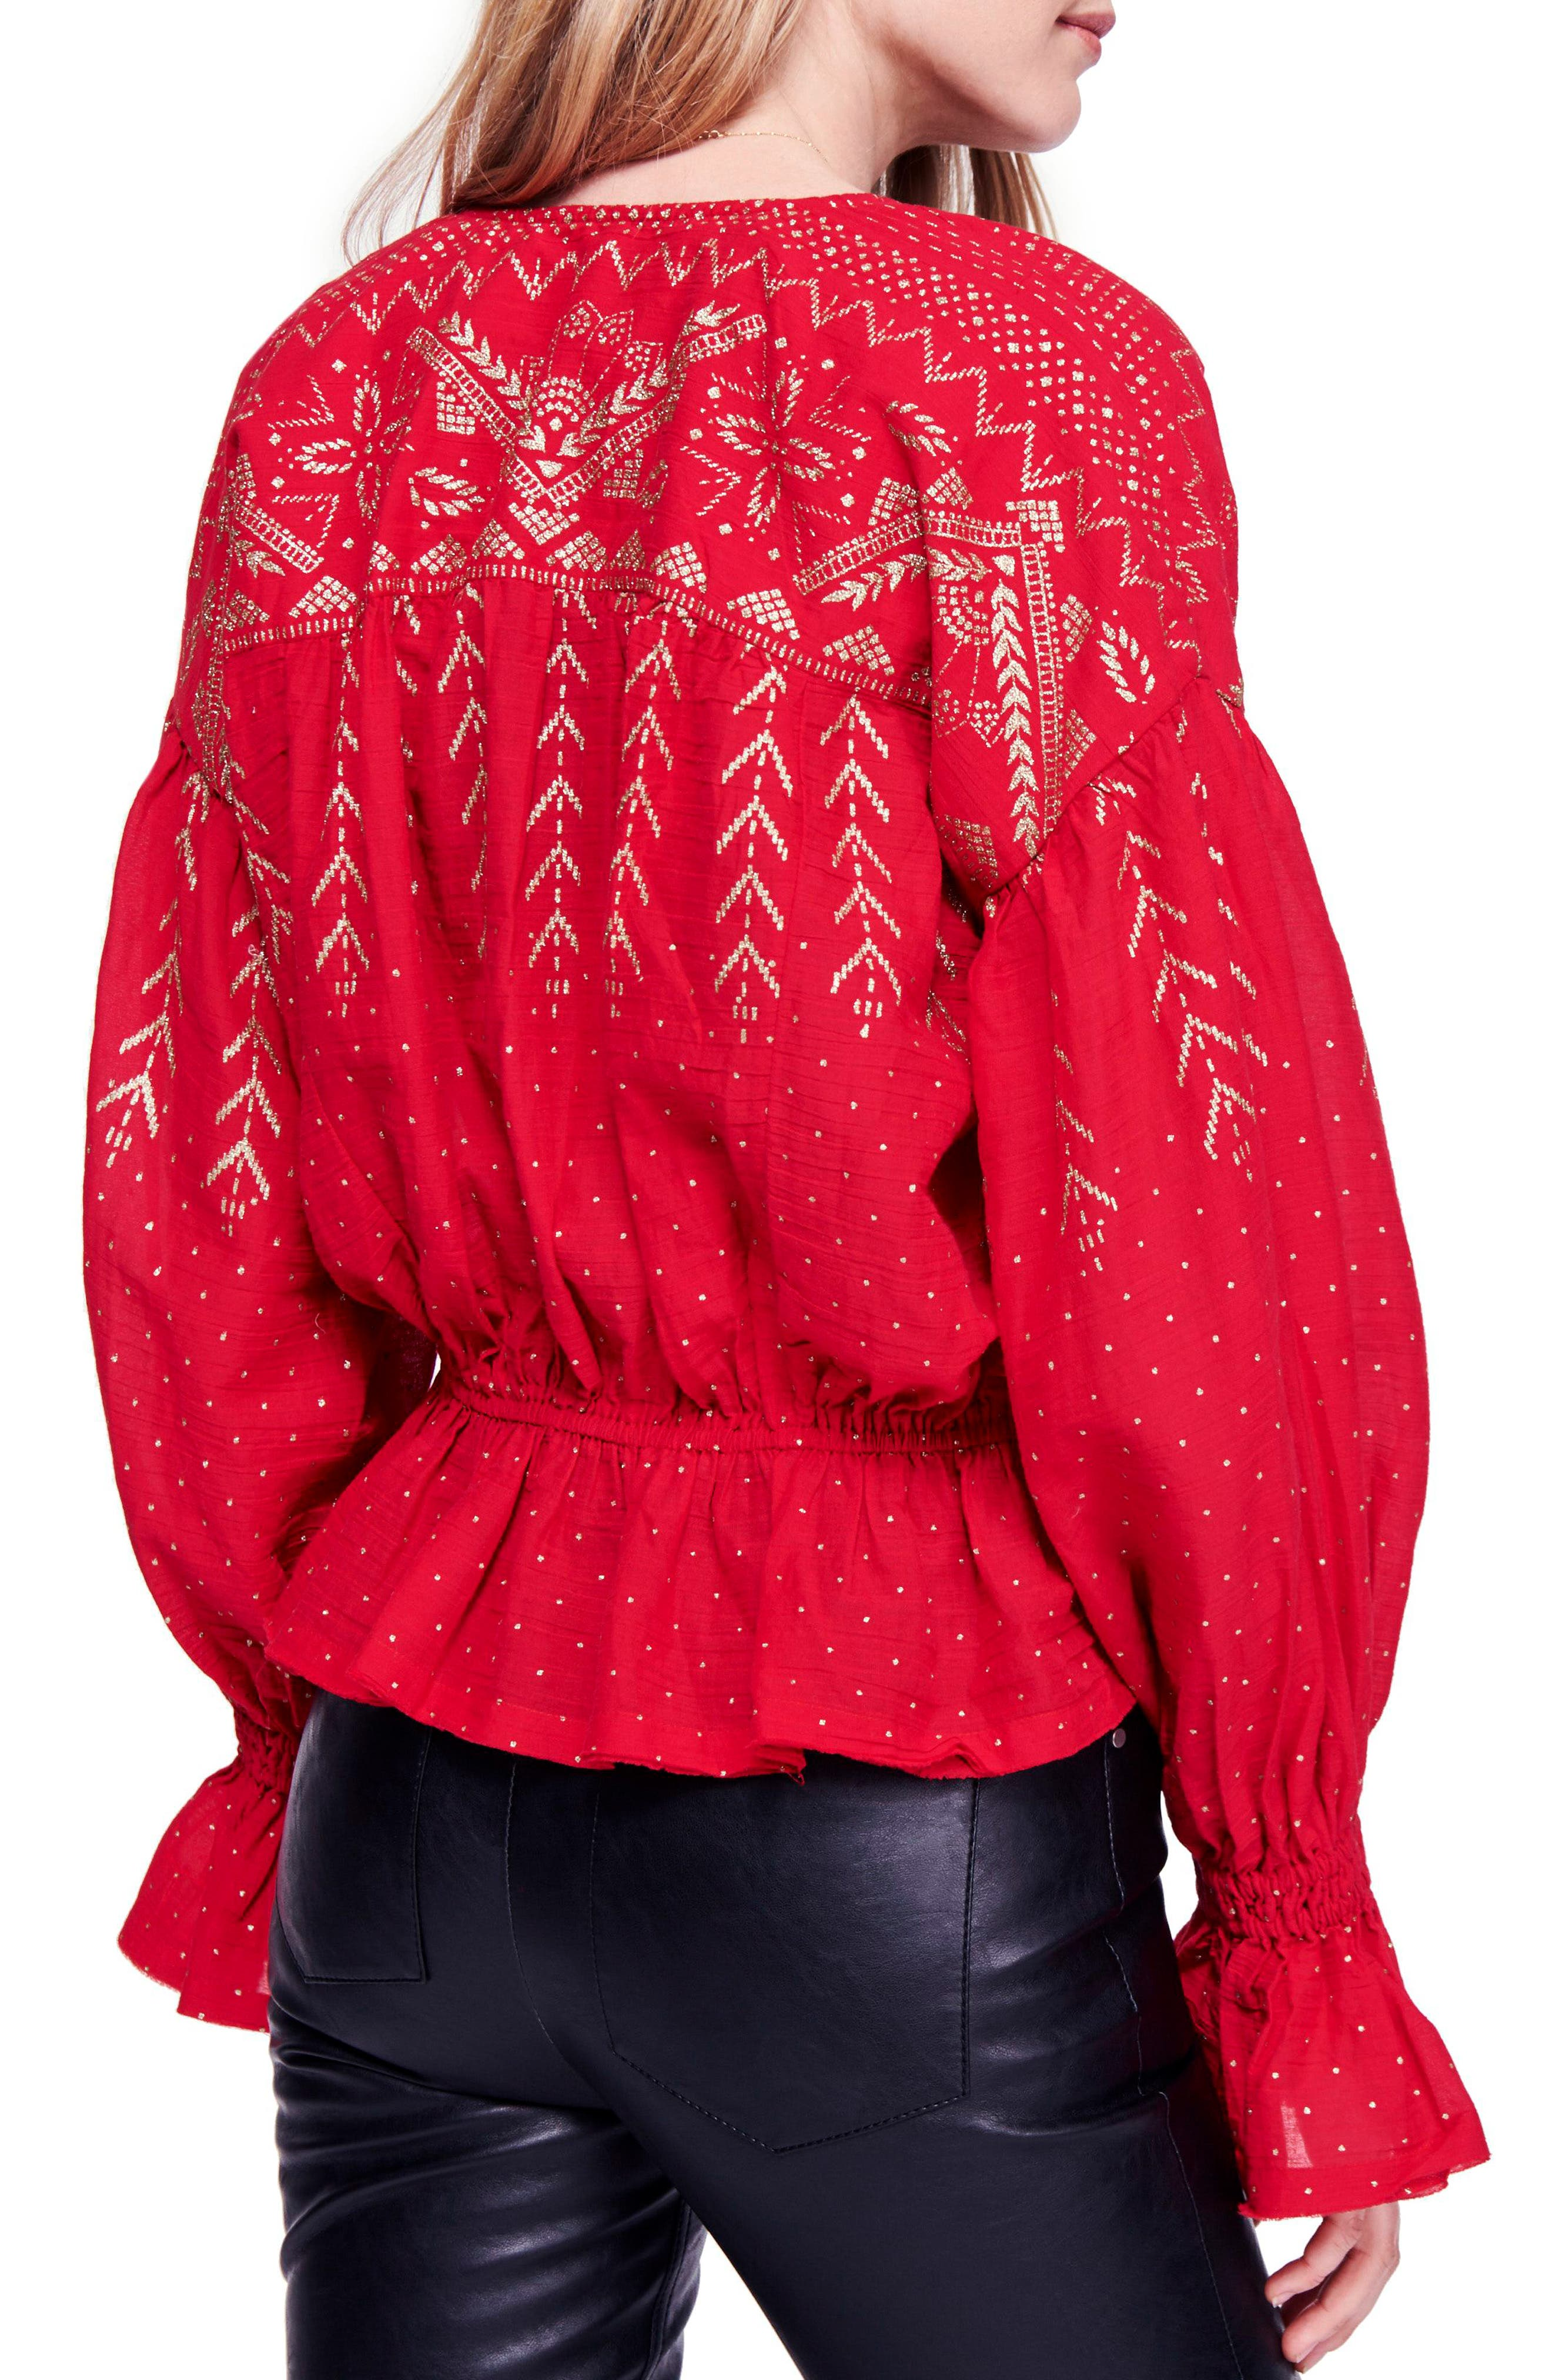 Counting Stars Blouse,                             Alternate thumbnail 2, color,                             RED